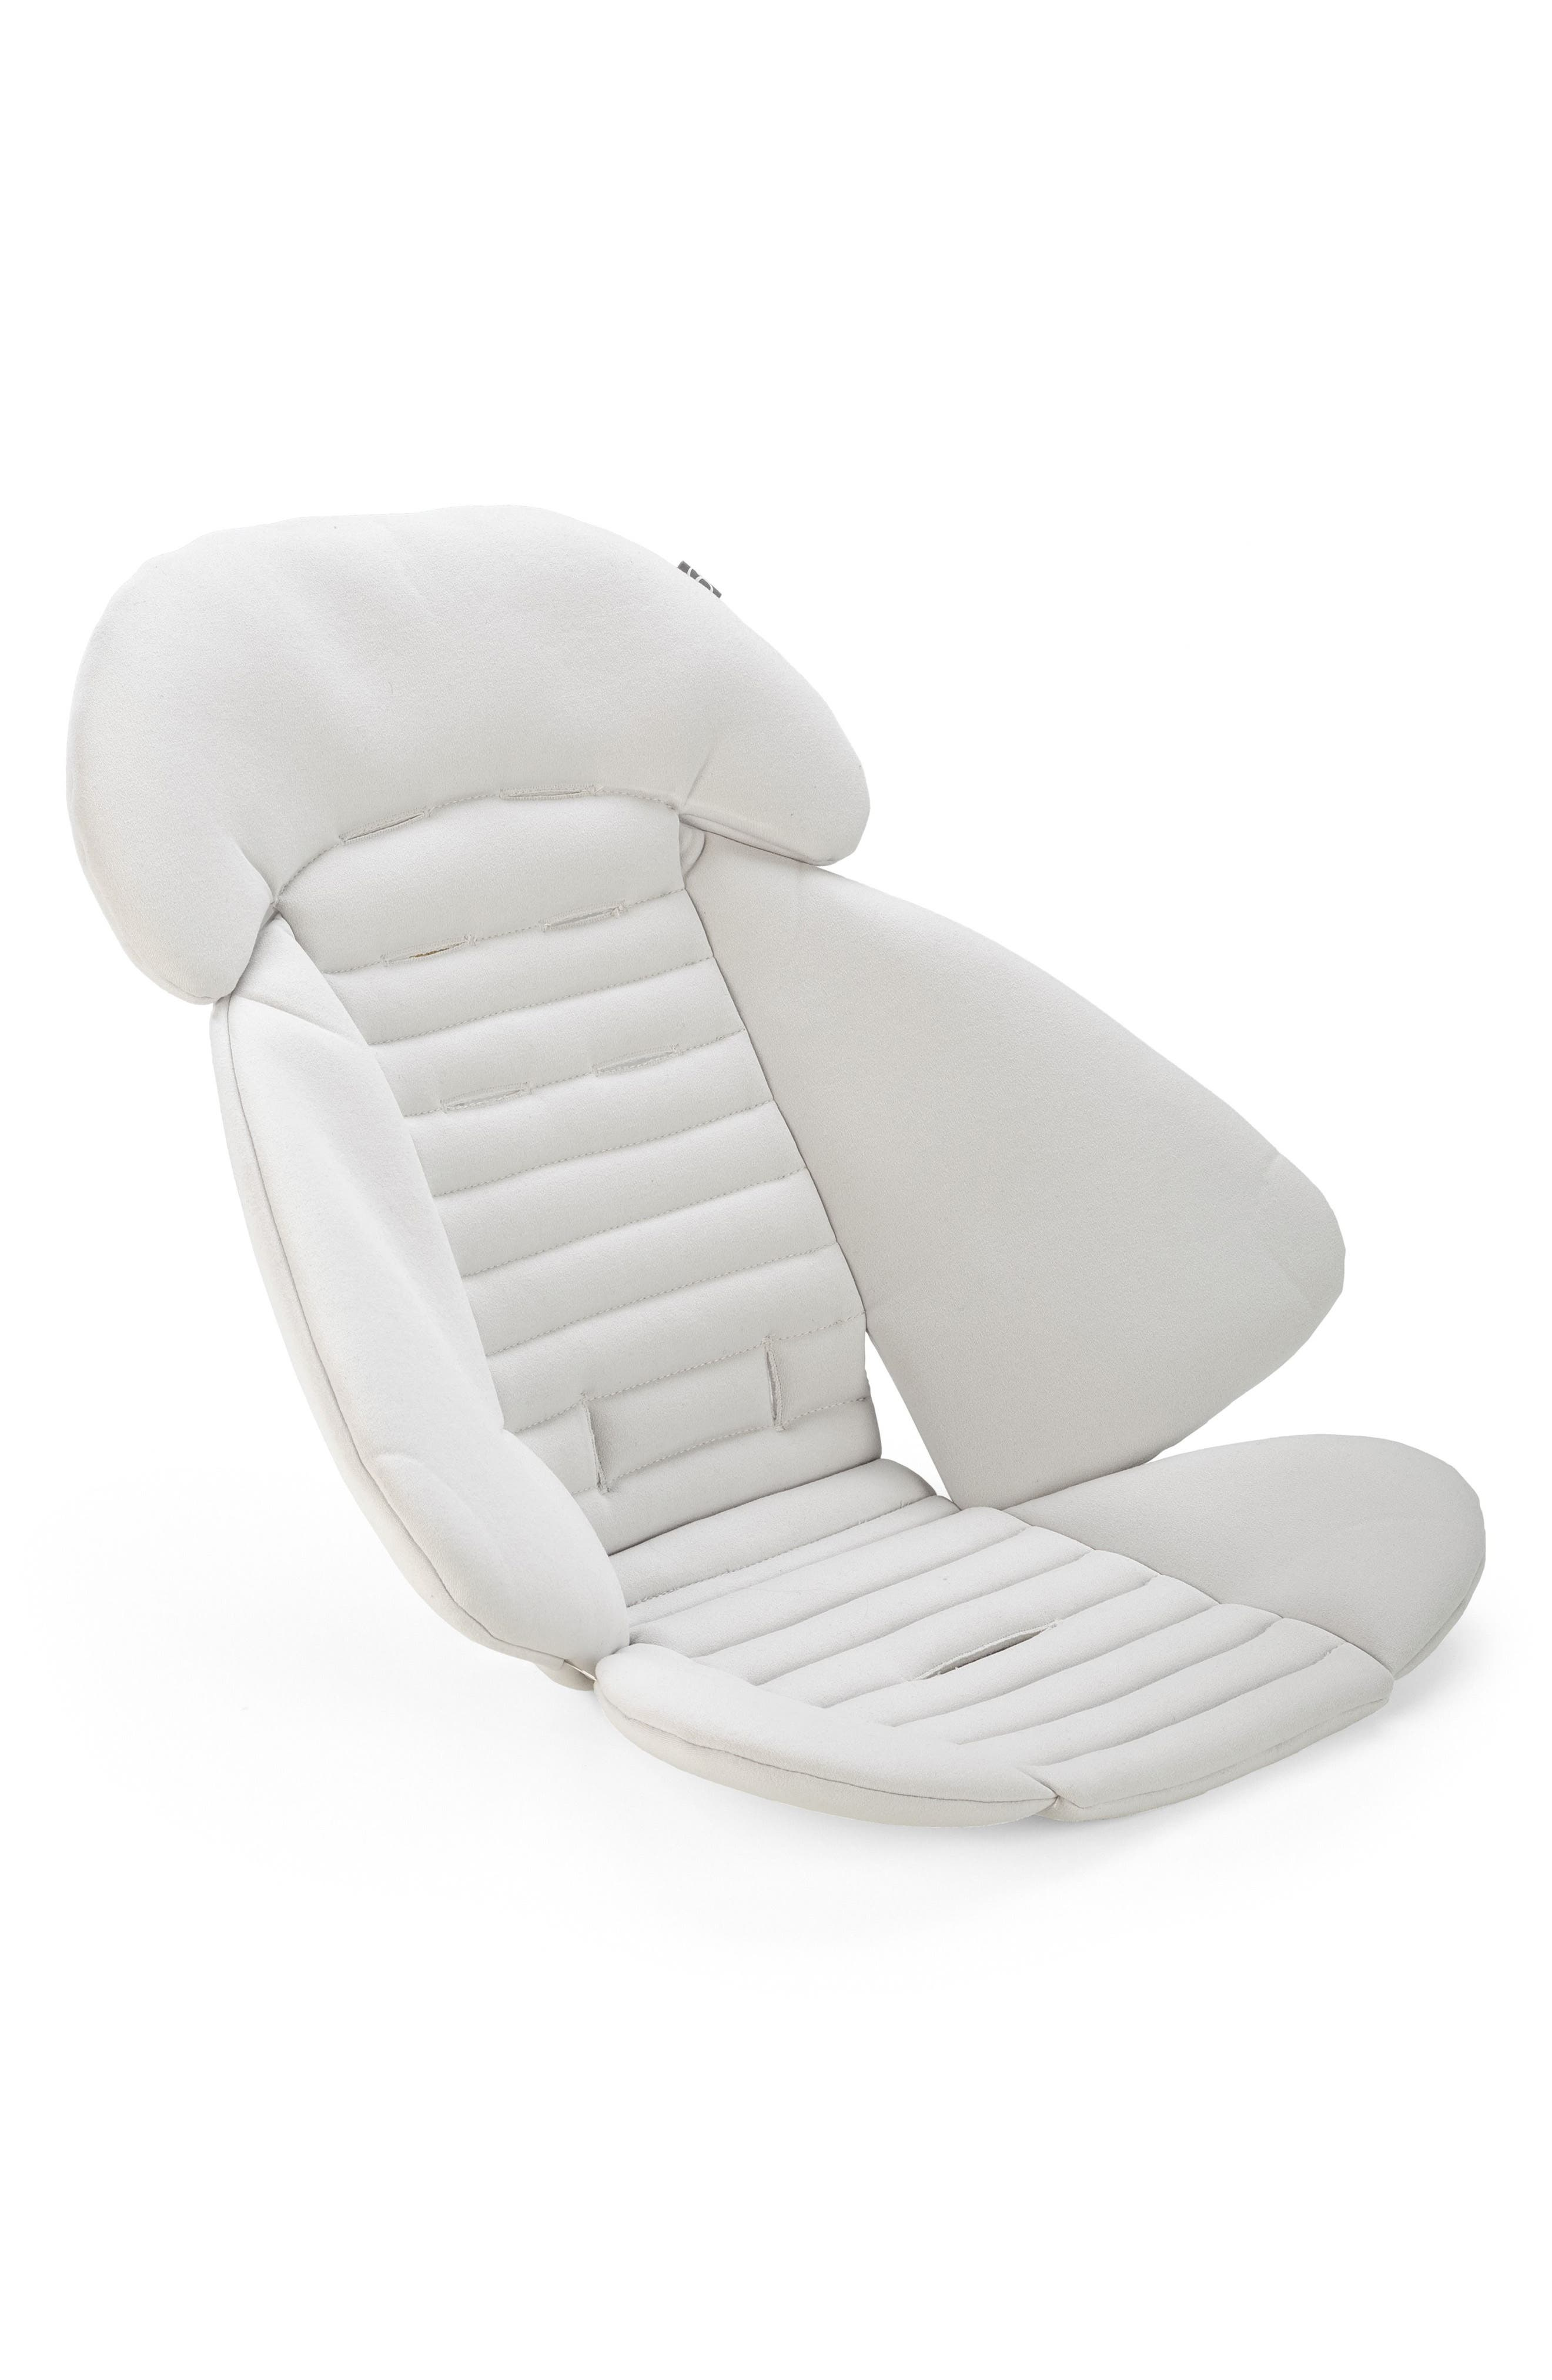 Main Image - Stokke® Stroller Seat Inlay for Xplory/Trailz/Crusi Strollers